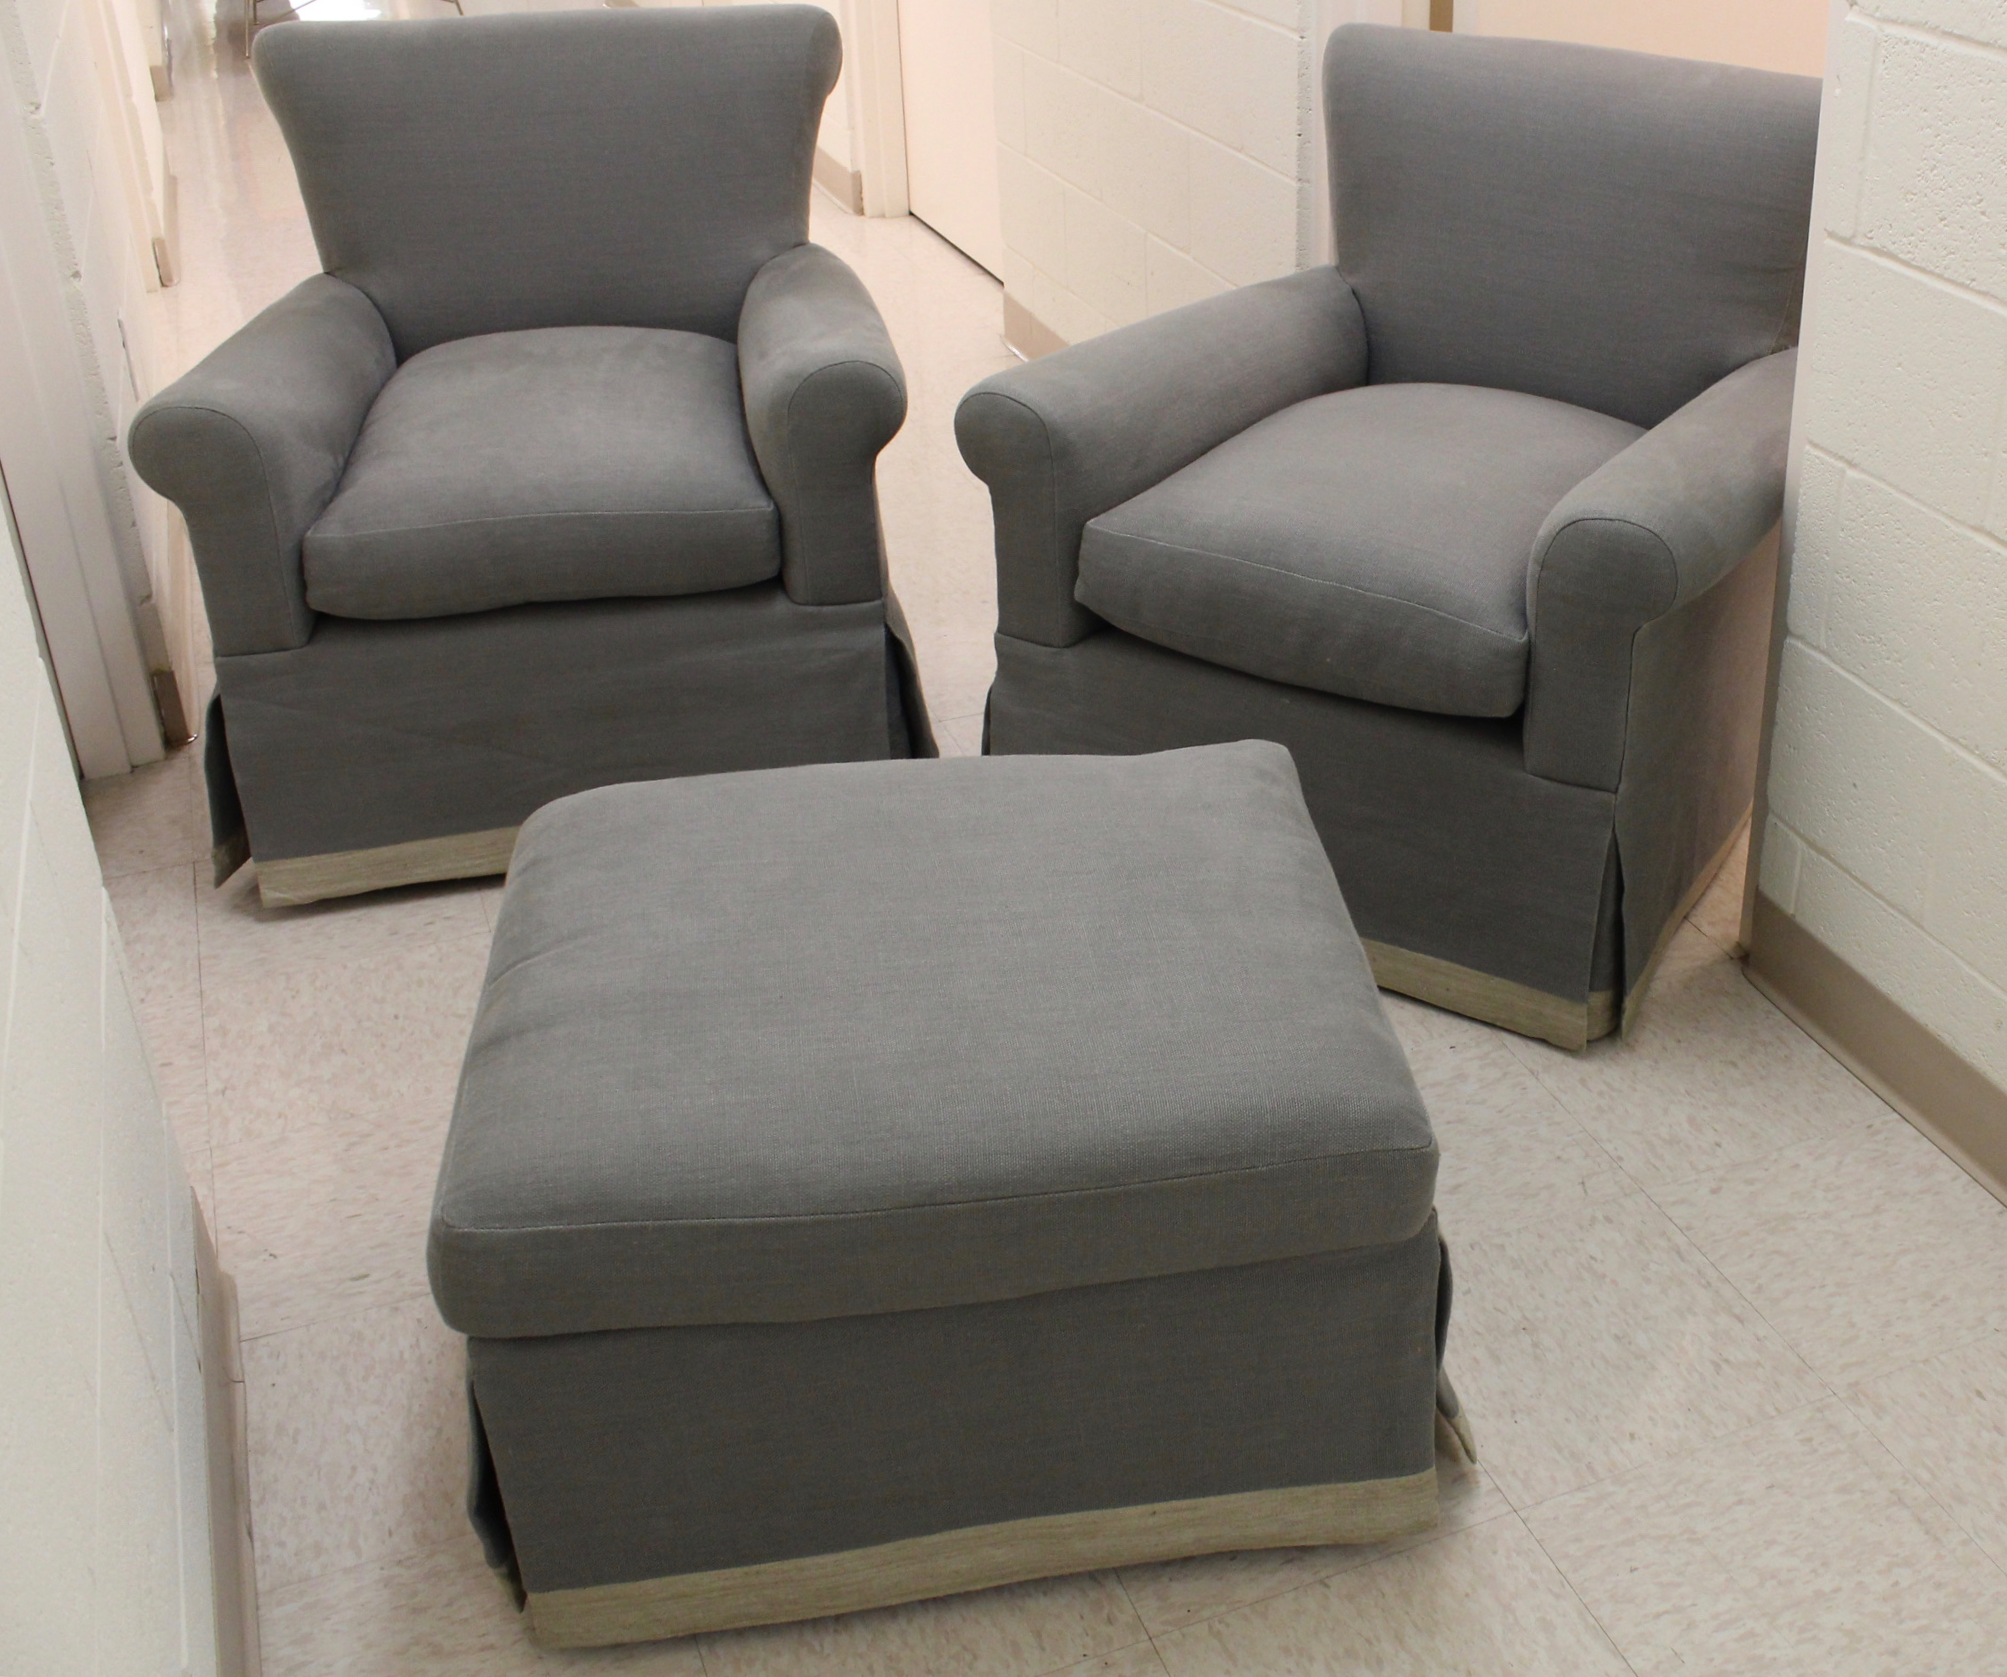 Pair of Custom Club Chairs & Ottoman